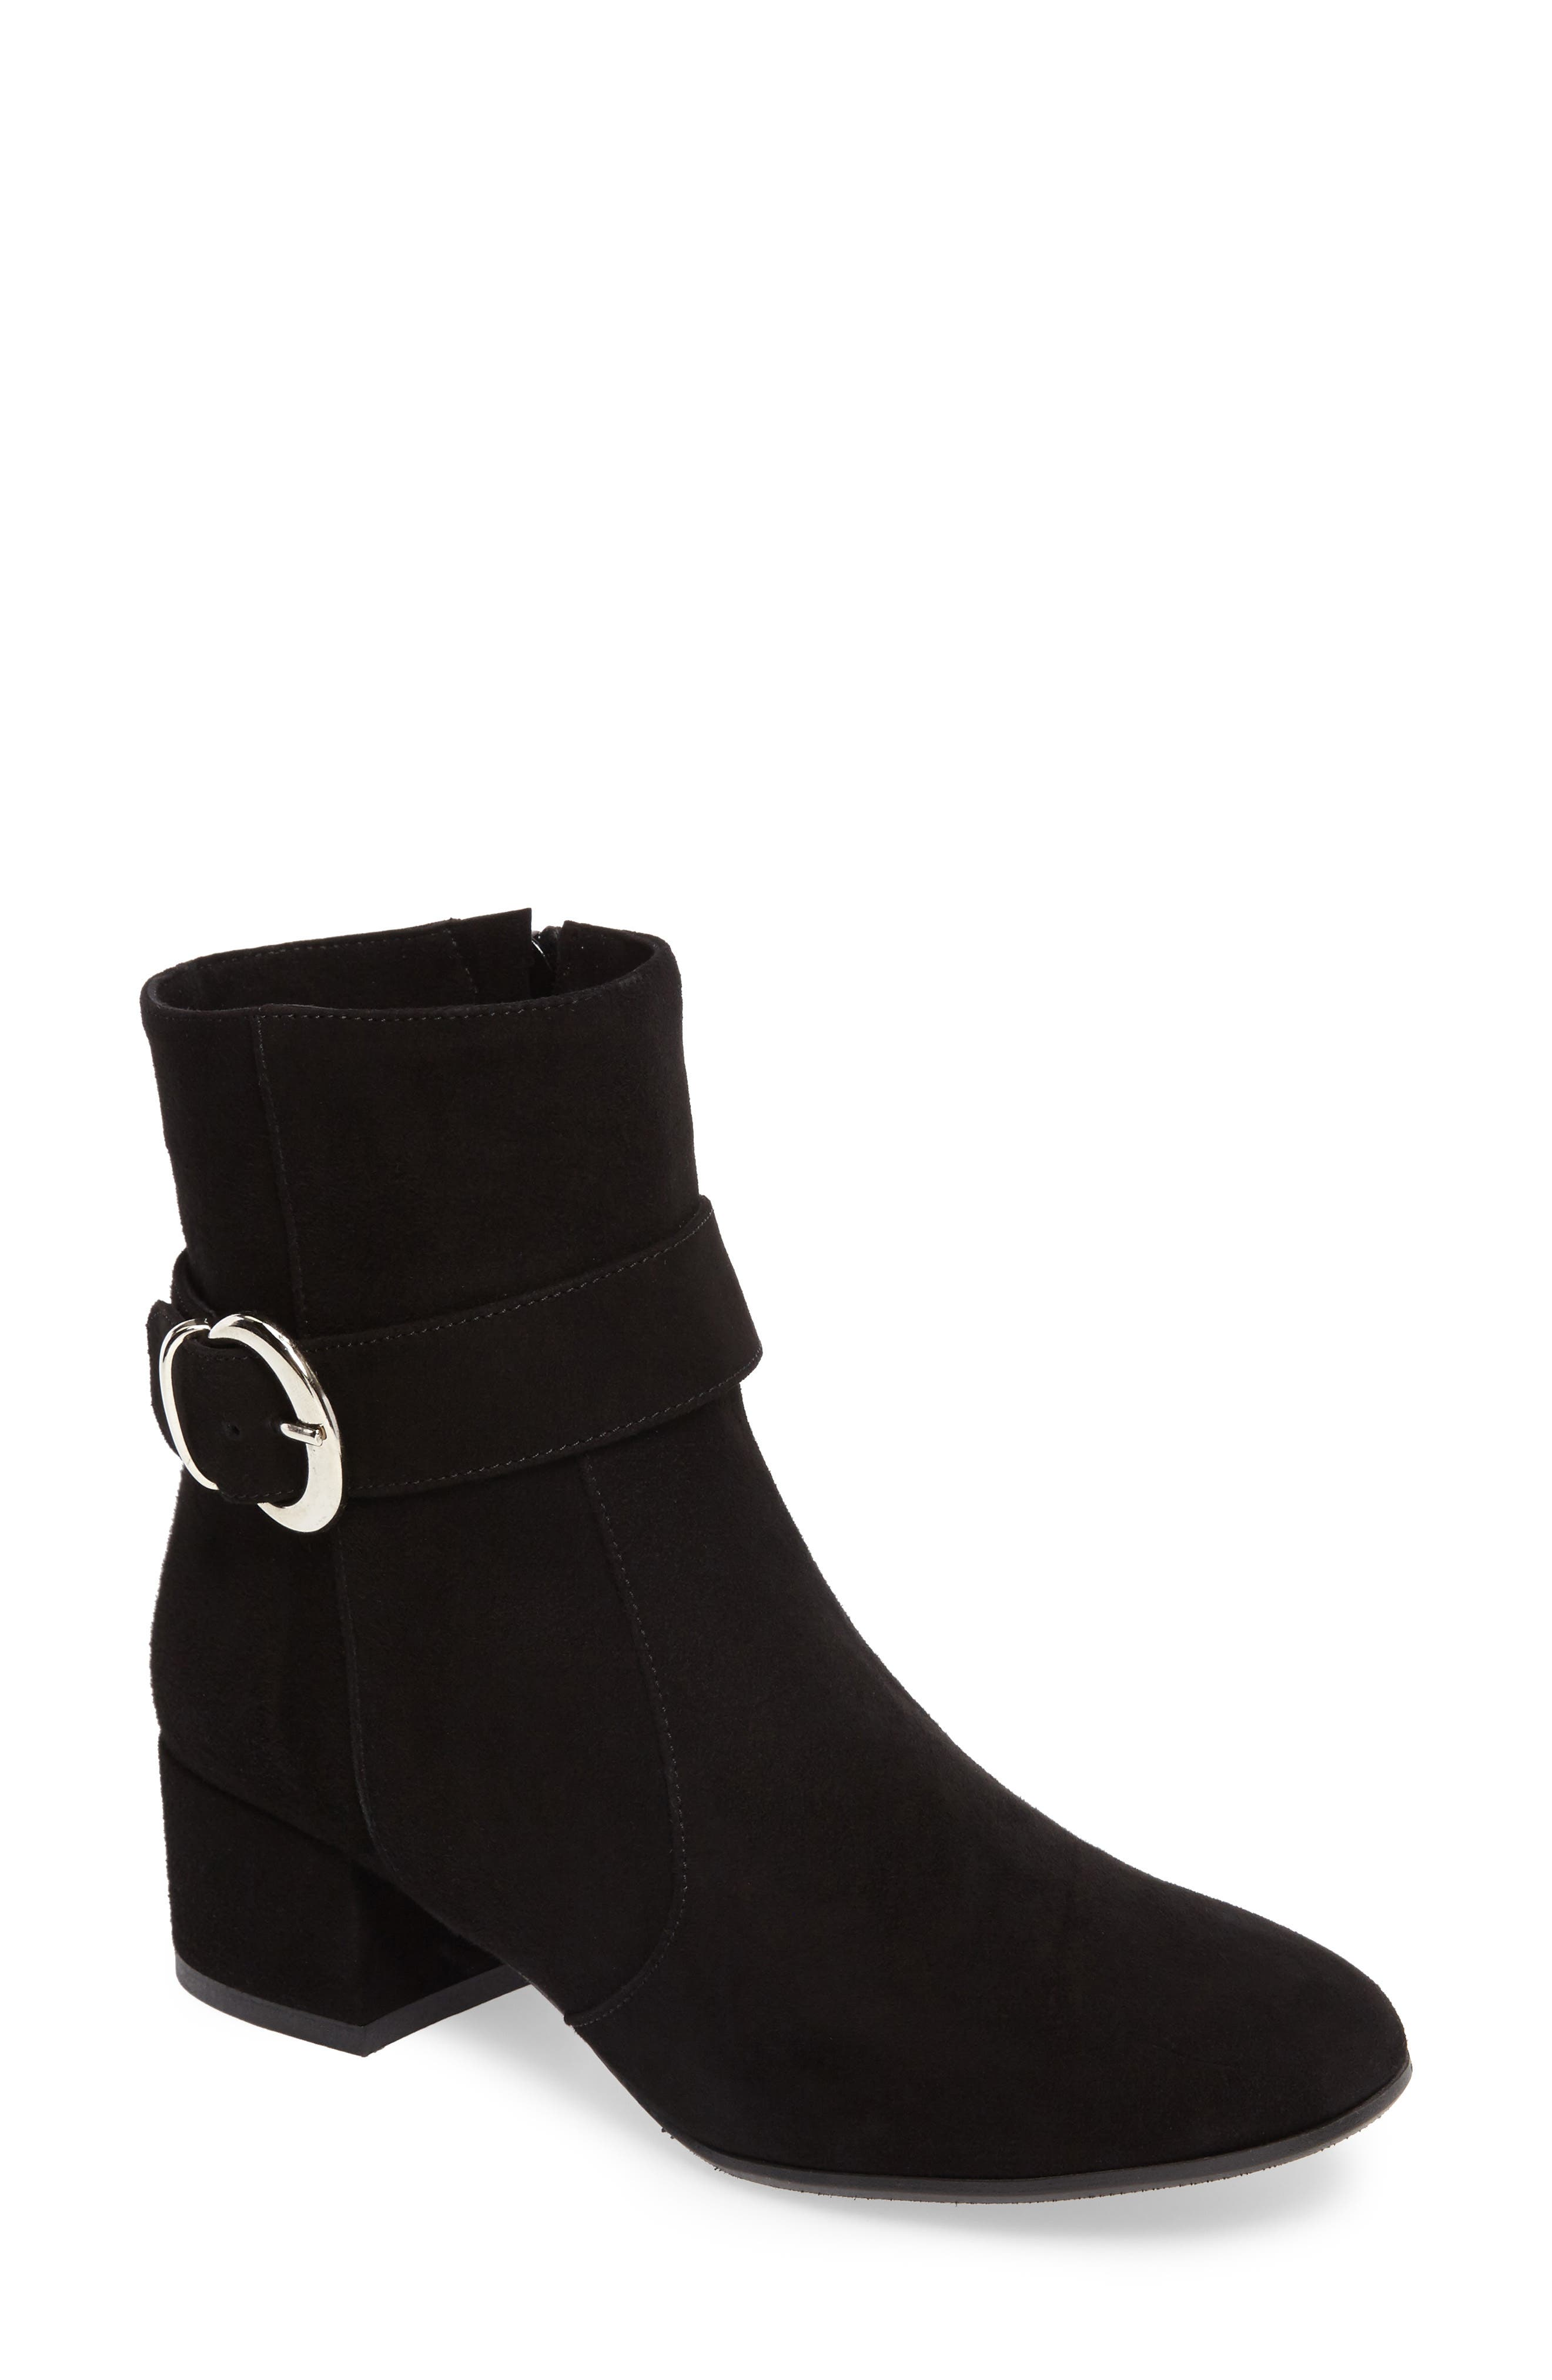 Maddie Buckle Strap Bootie,                             Main thumbnail 1, color,                             001